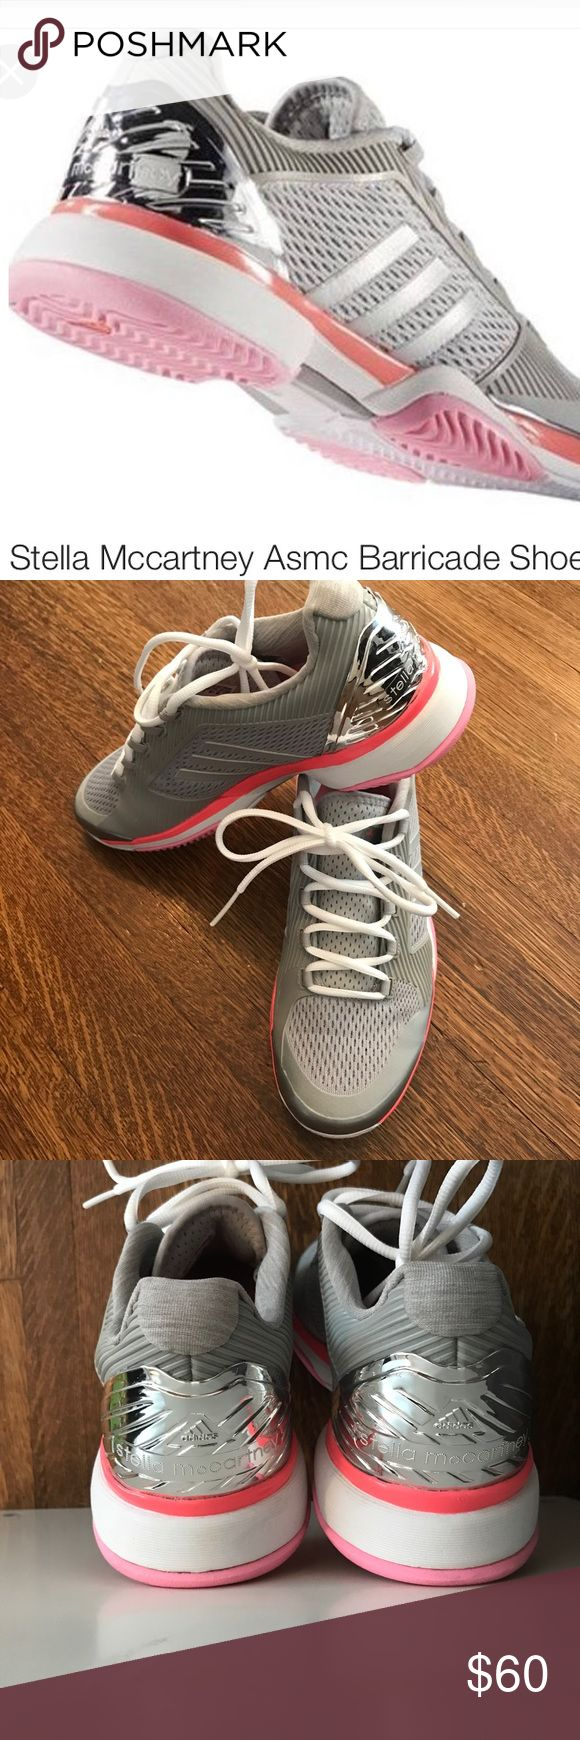 Stella McCartney Women's Adidas Tennis Shoe Pink and Gray ASMC  Barricade tennis shoe. Gently used and worn only a hand full of times. Very clean! Runs about a half size big. adidas Shoes Sneakers